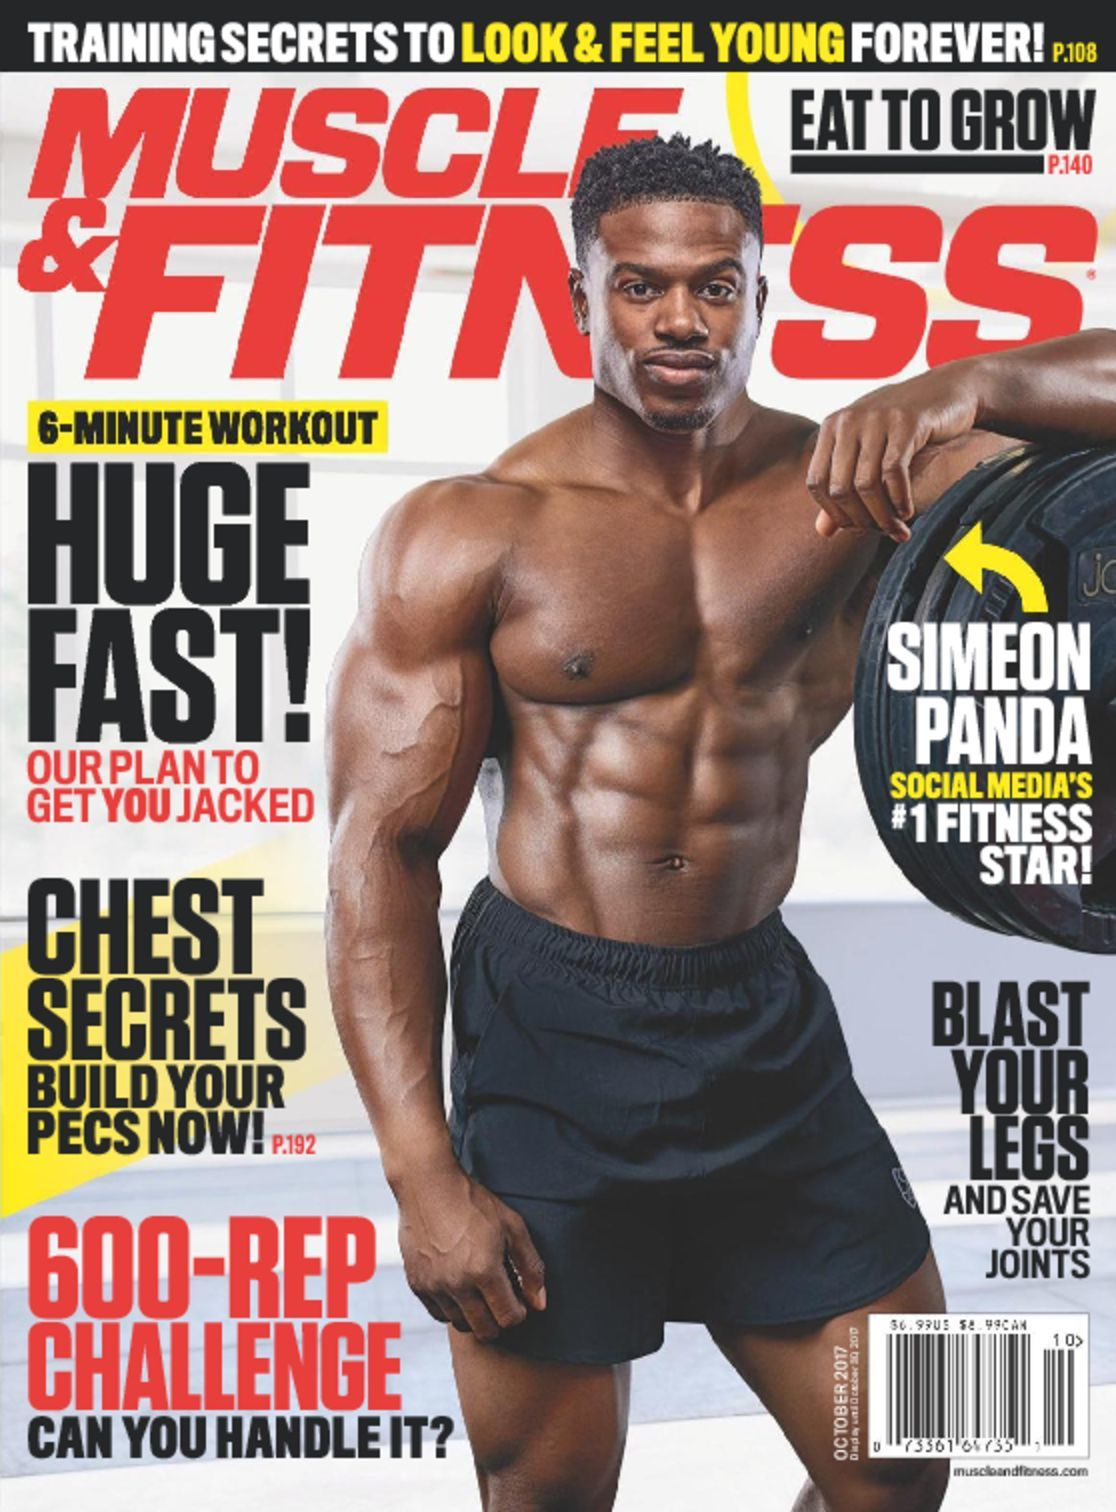 5015-muscle-fitness-Cover-2017-October-1-Issue.jpg